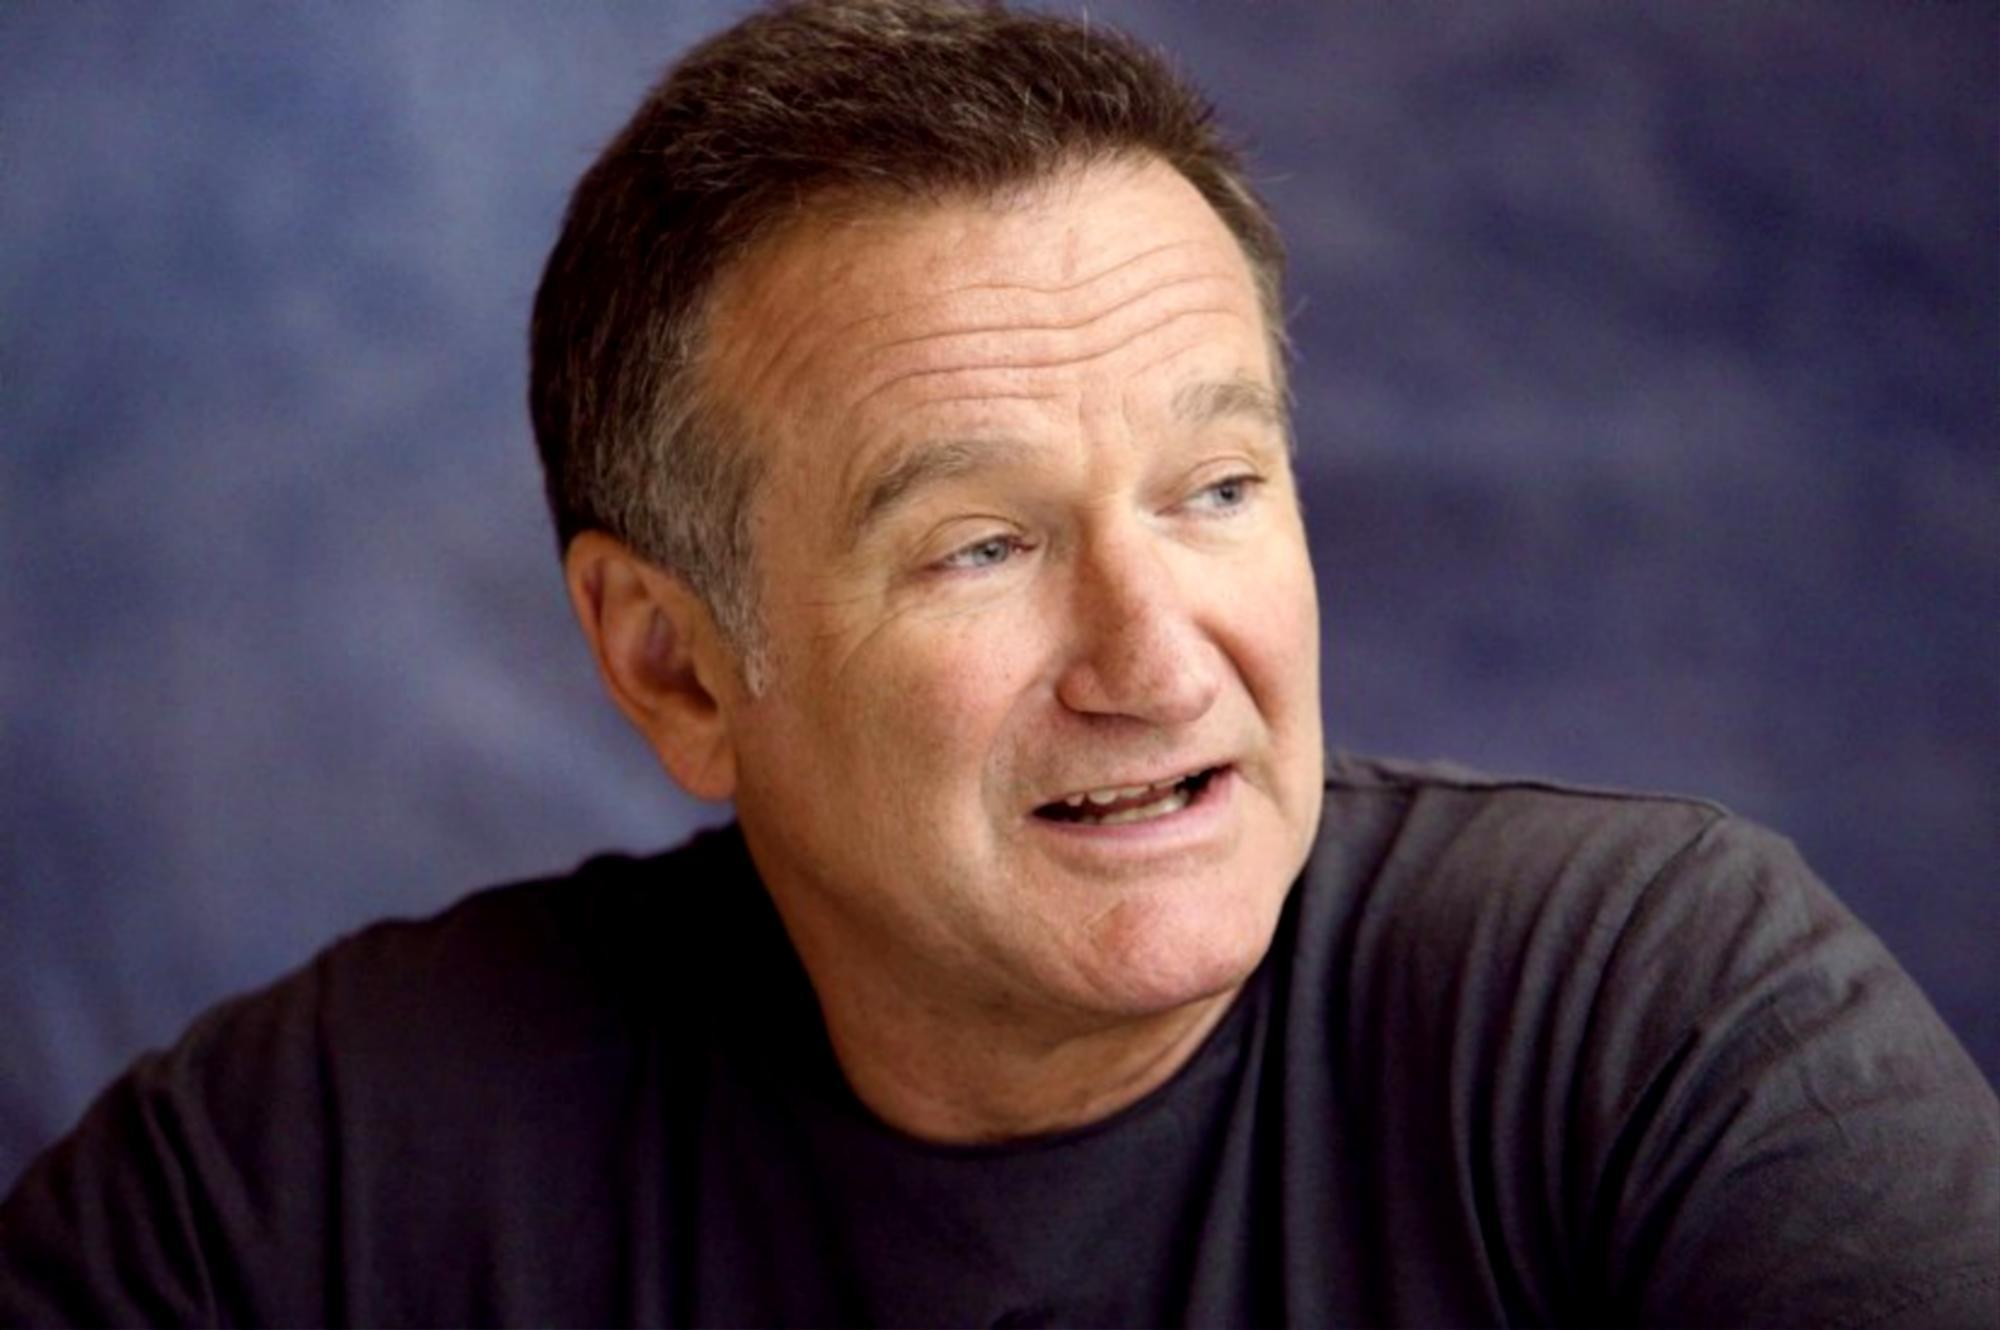 Robin Williams: An Agent of Change on Many Levels | Greg Archer